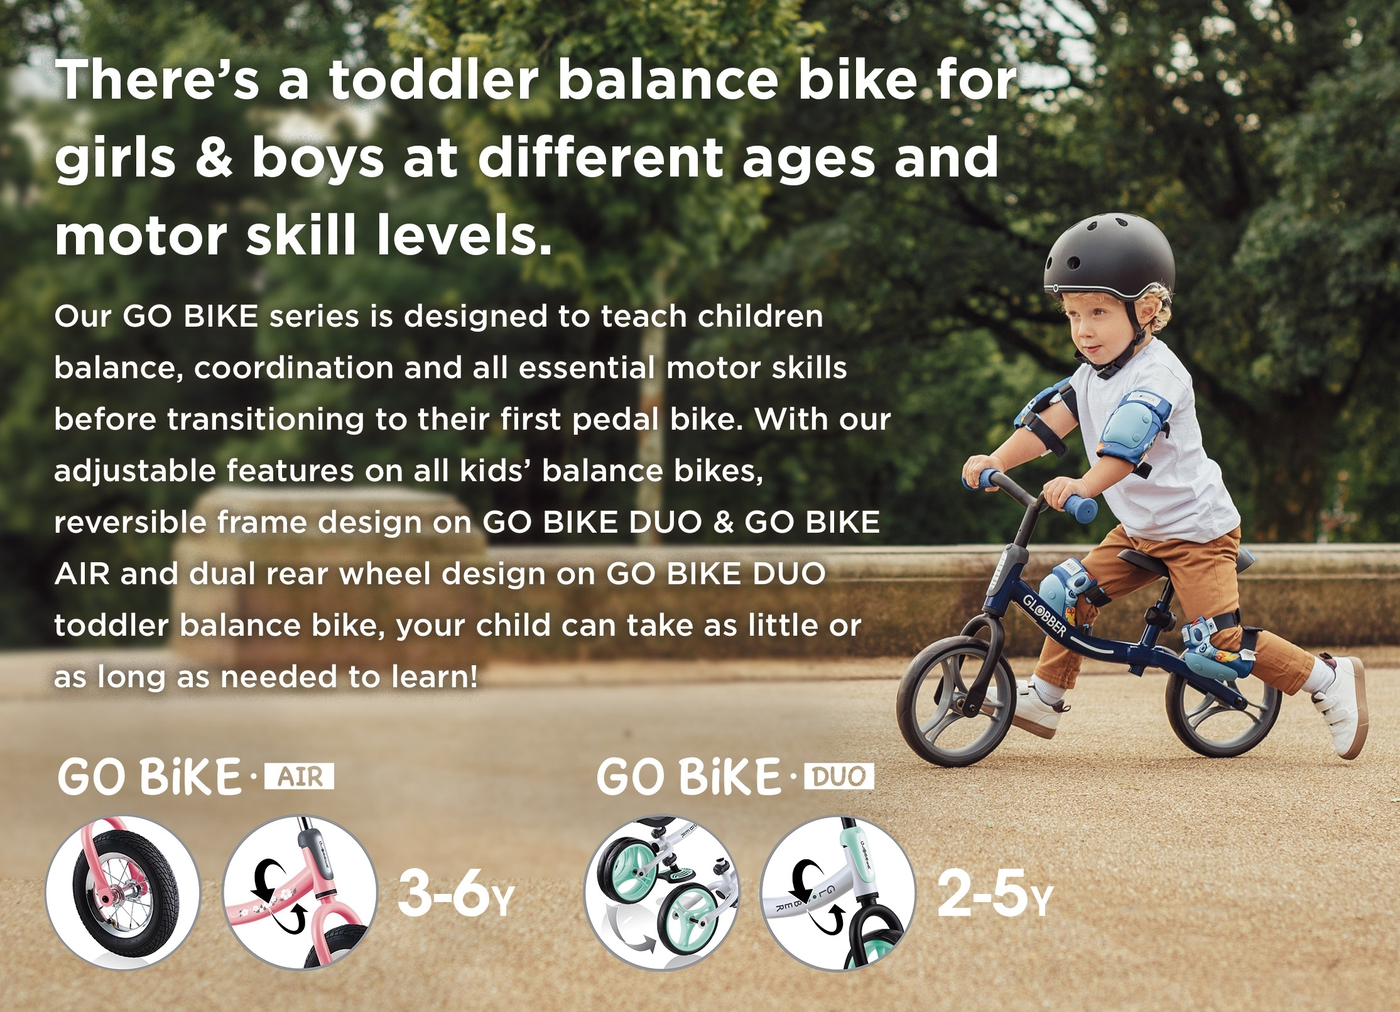 USP_GO-BIKE-toddler-balance-bike-for-girls-and-boys-with-adjustable-features